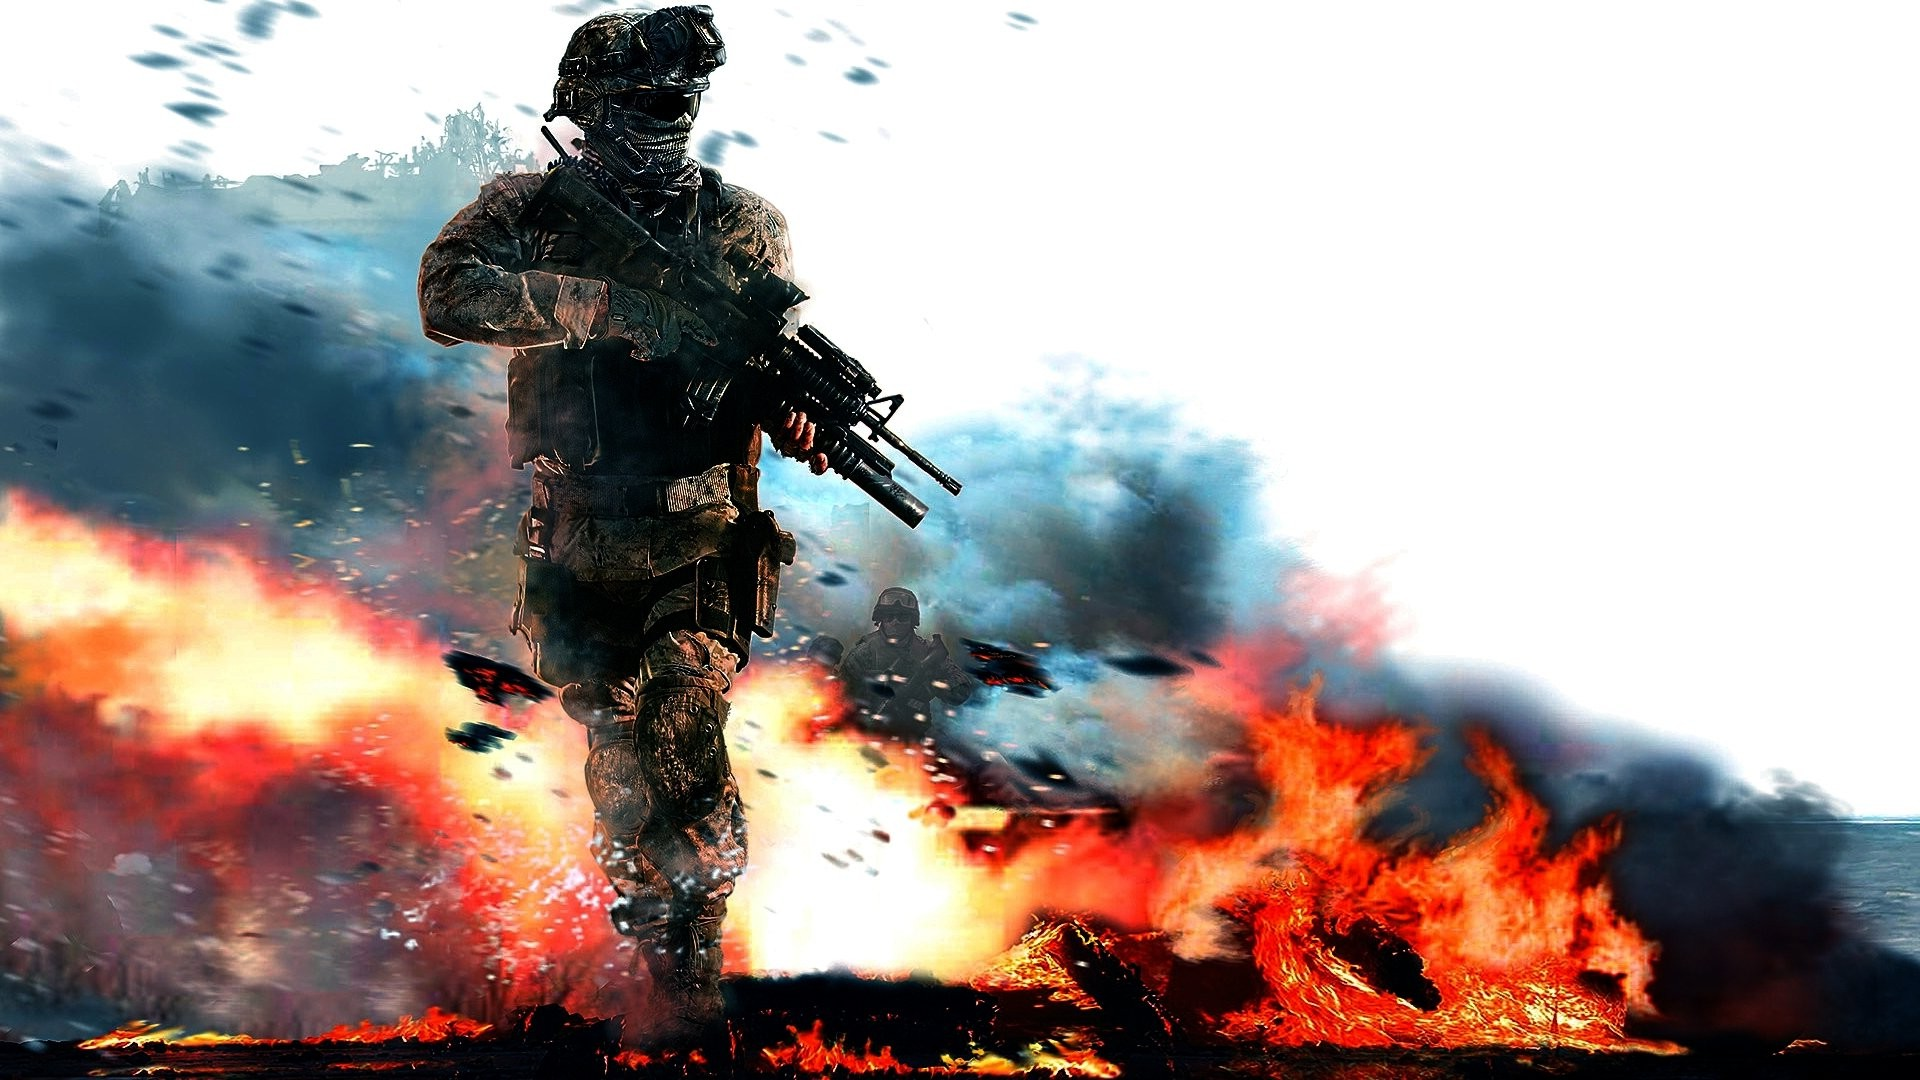 Free Download Call Of Duty Modern Warfare 2 Video Games Soldier